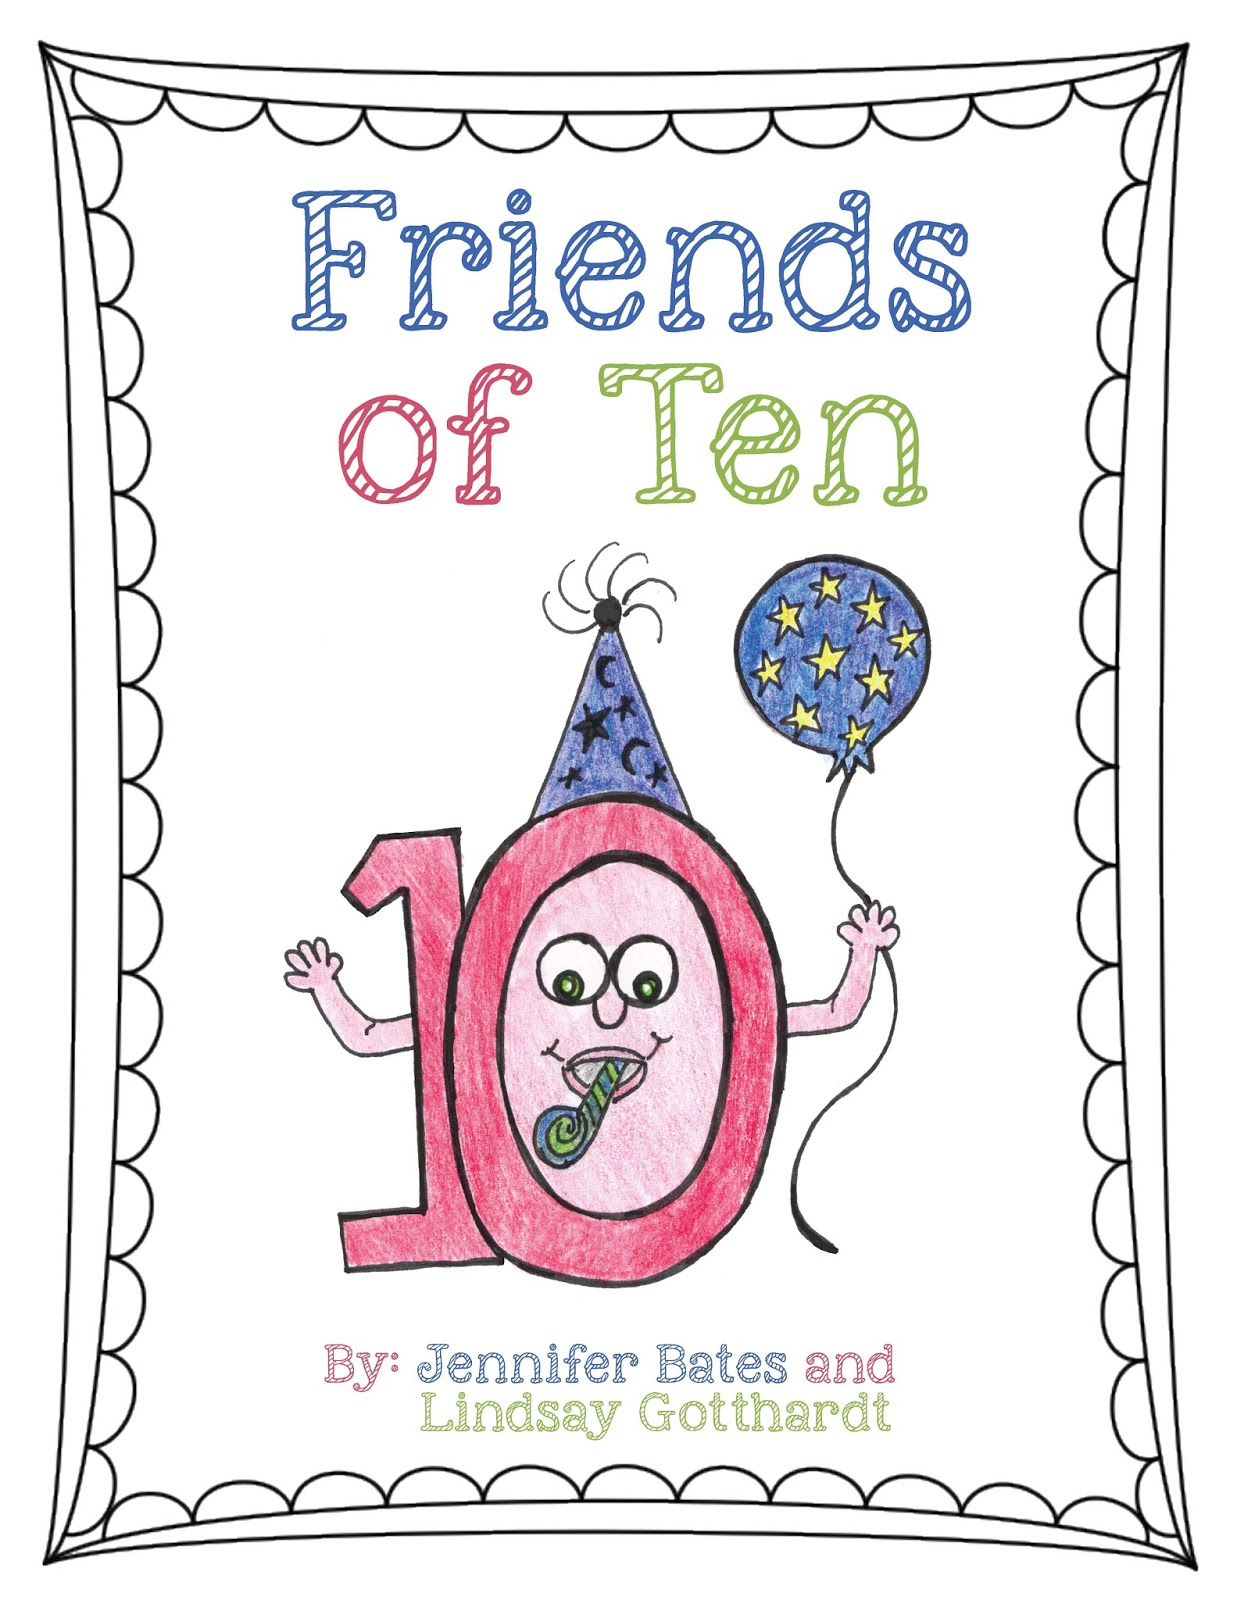 http://www.teacherspayteachers.com/Product/Friends-of-Ten-825489